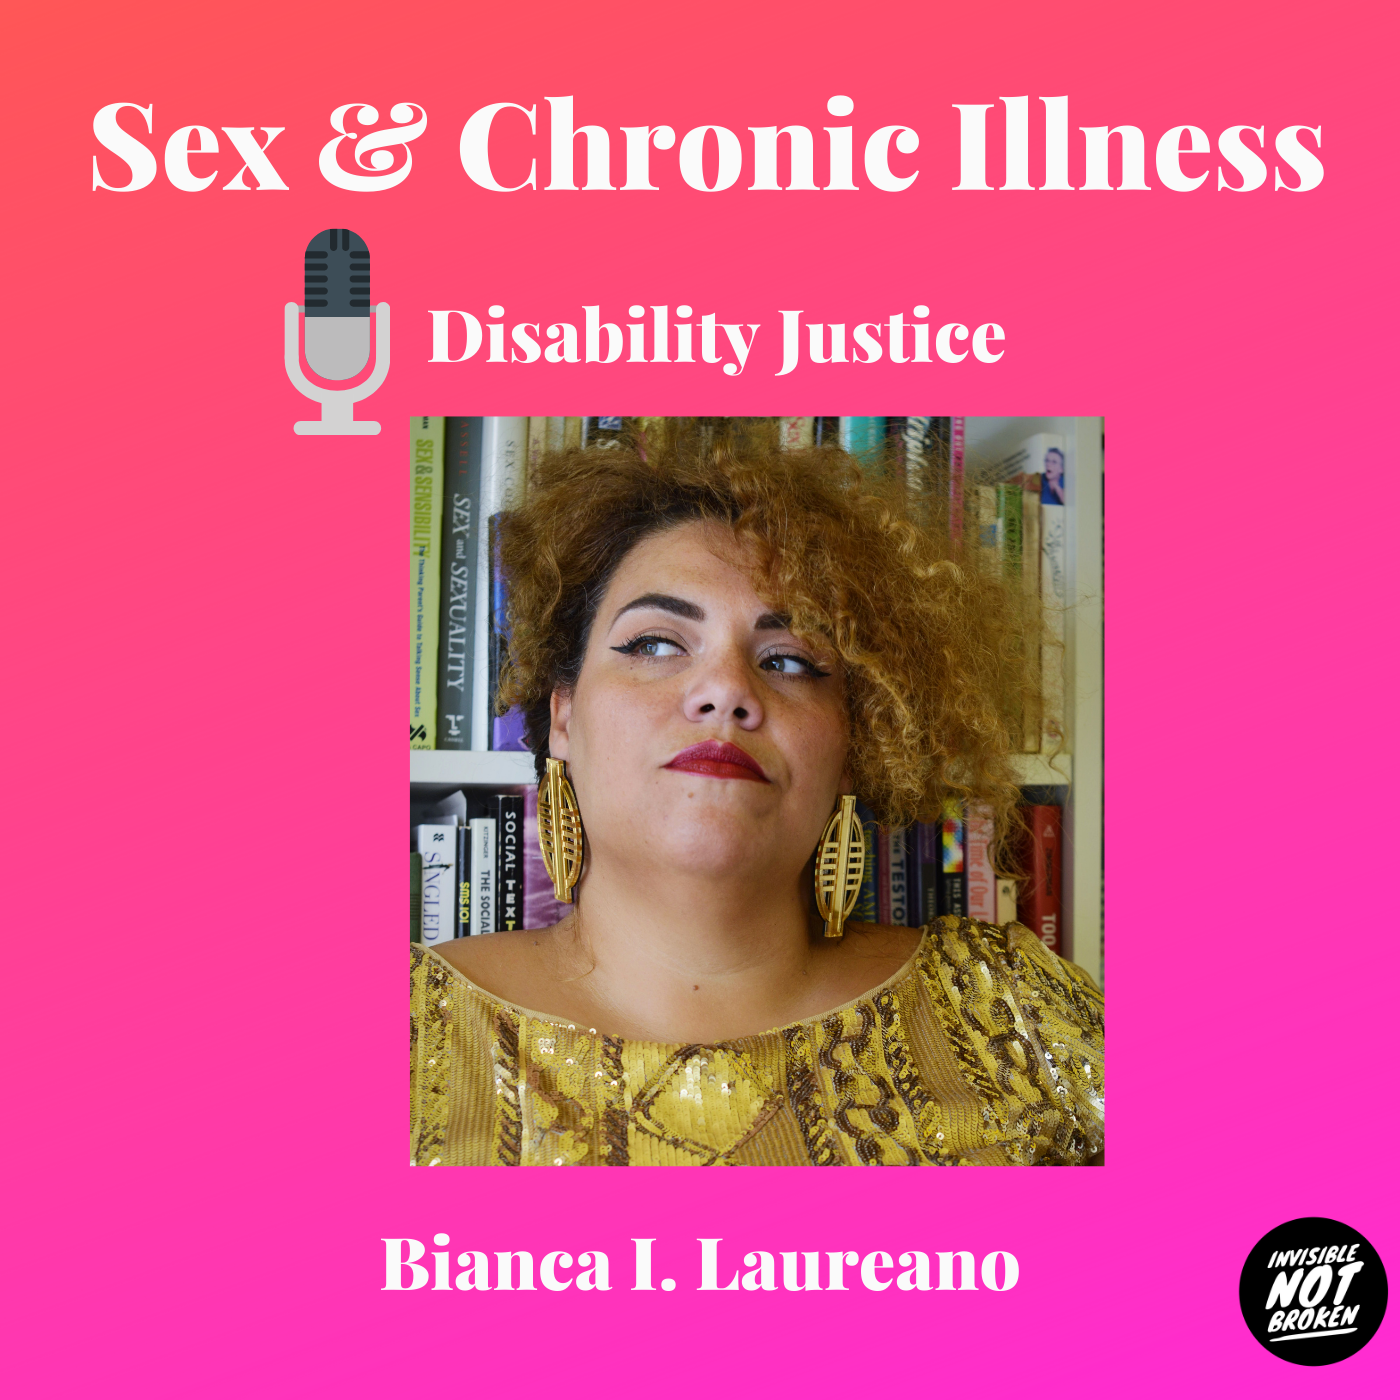 Sex and Chronic Illness - Episode 5: Disability Justice: Bianca Laureano